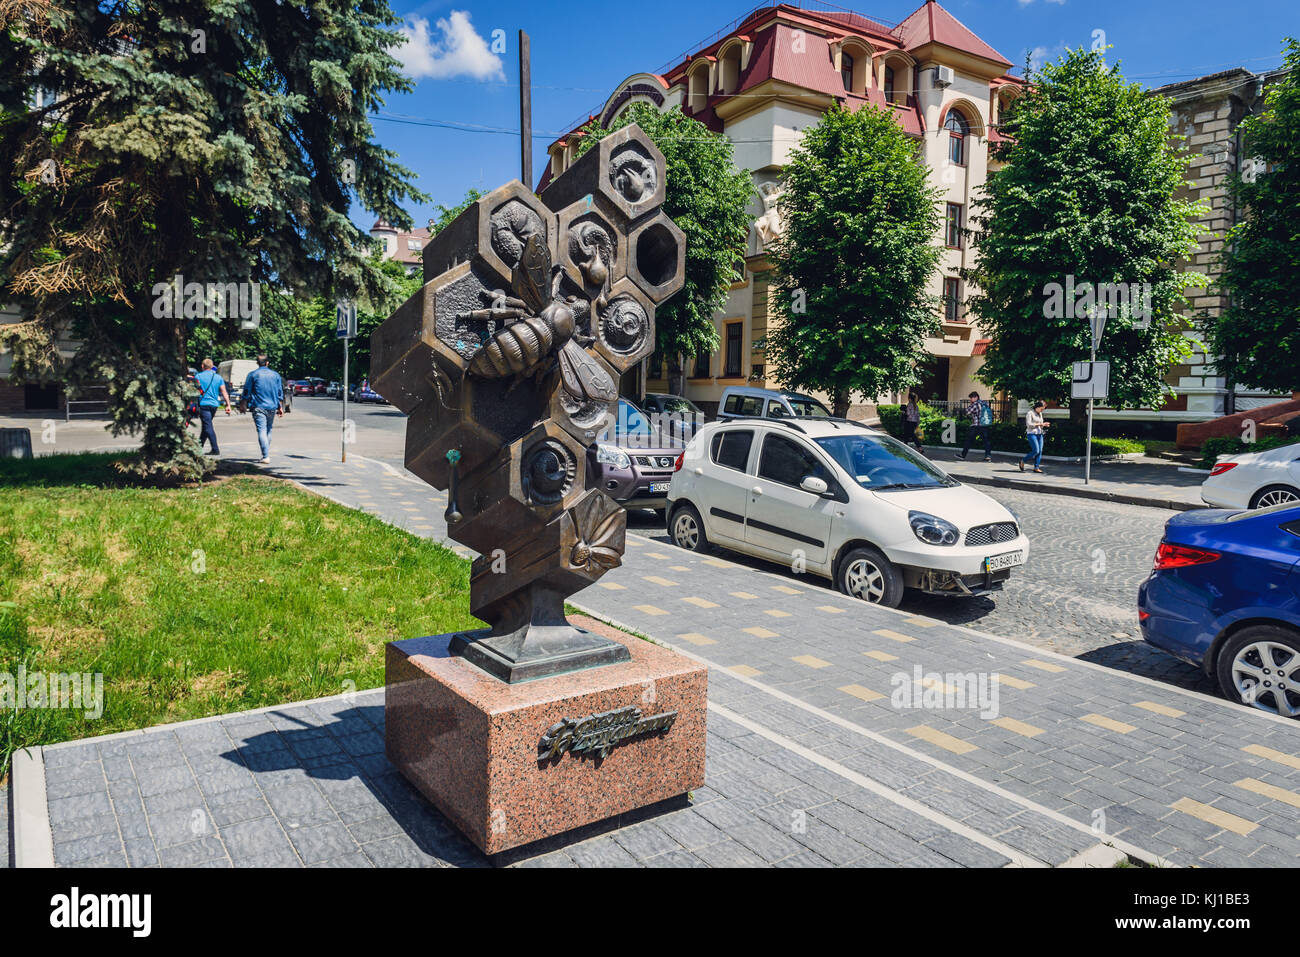 Worker bee statue in Ternopil city, administrative center of the Ternopil Oblast region in western Ukraine - Stock Image